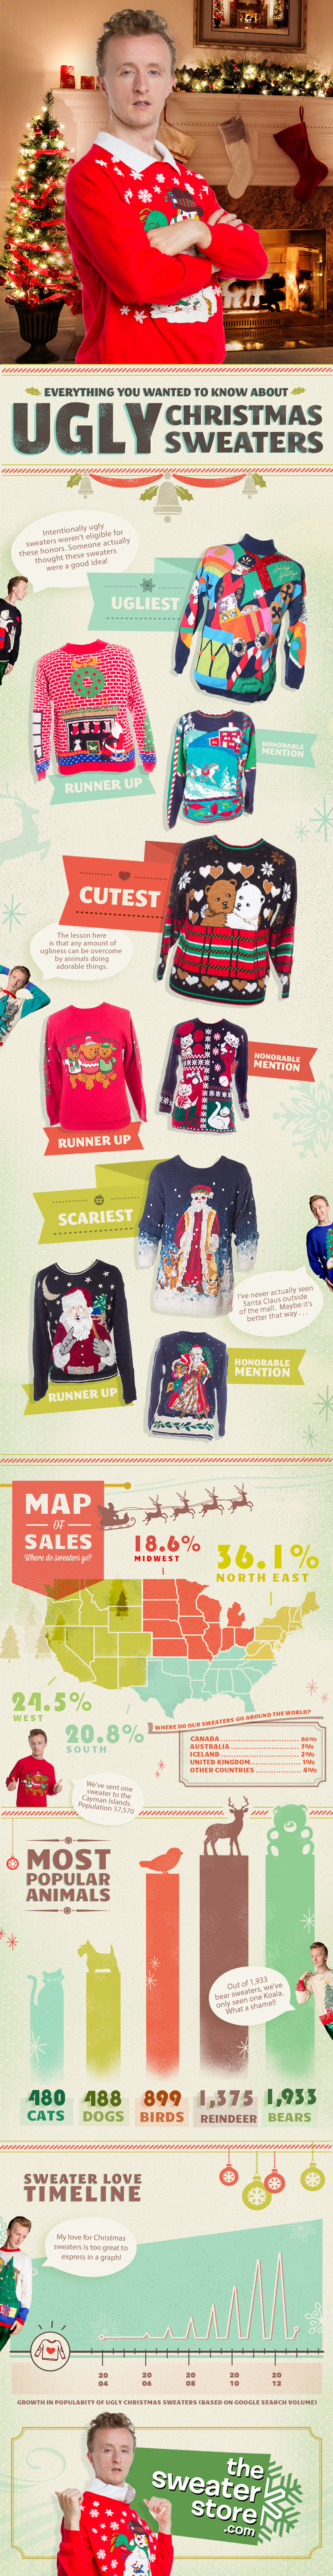 Everything You Wanted To Know About Ugly Christmas Sweaters